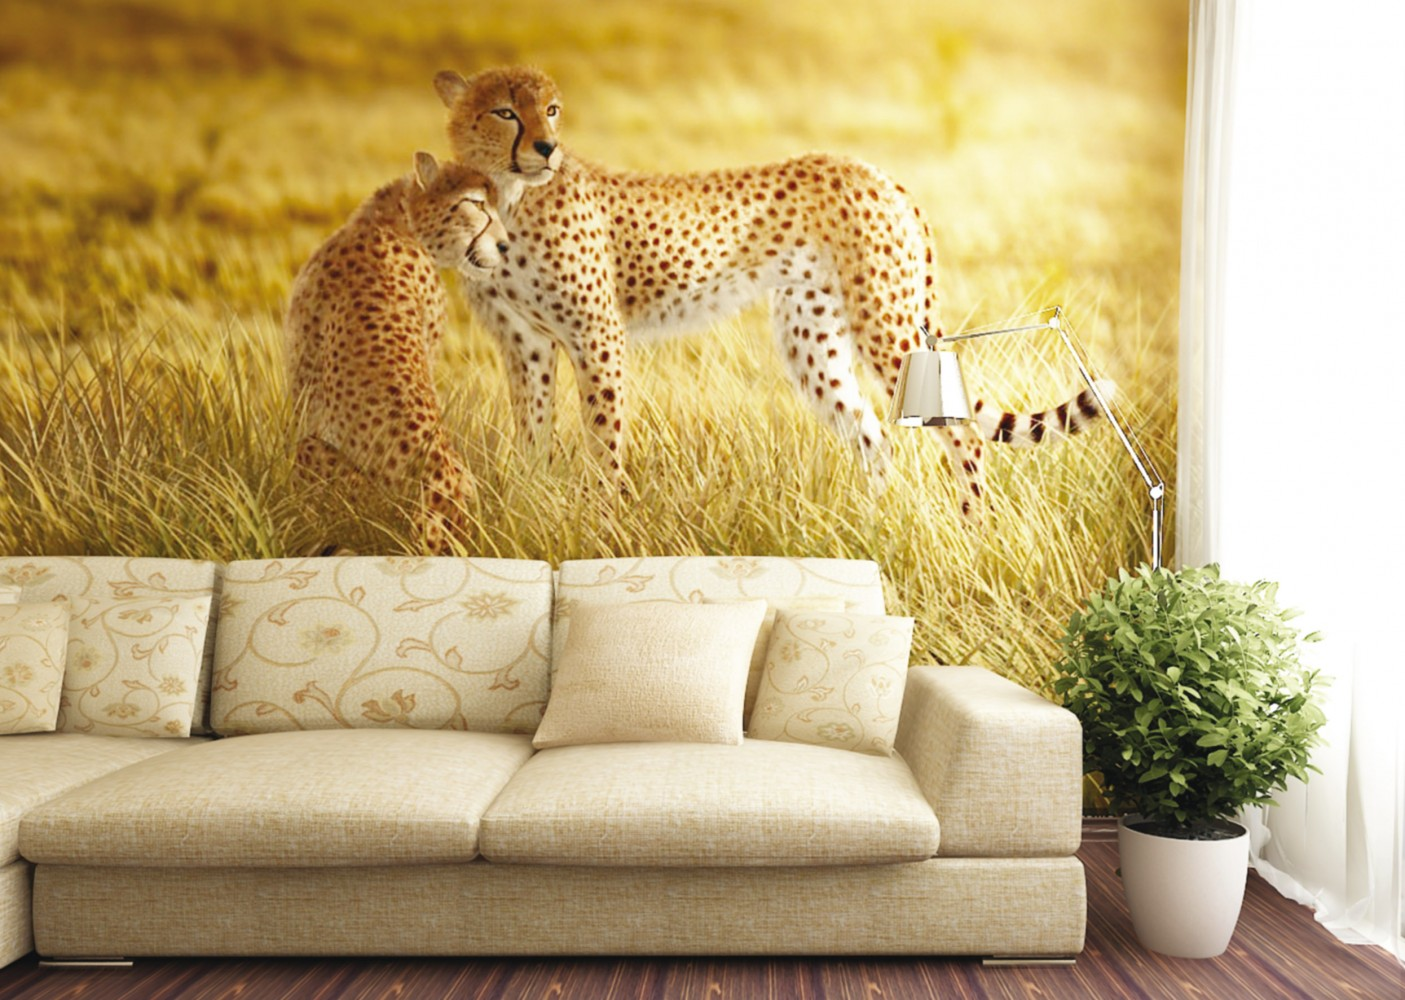 Wall Mural Wallpaper Nature Wilderness Animals Cheetah Safari Photo .